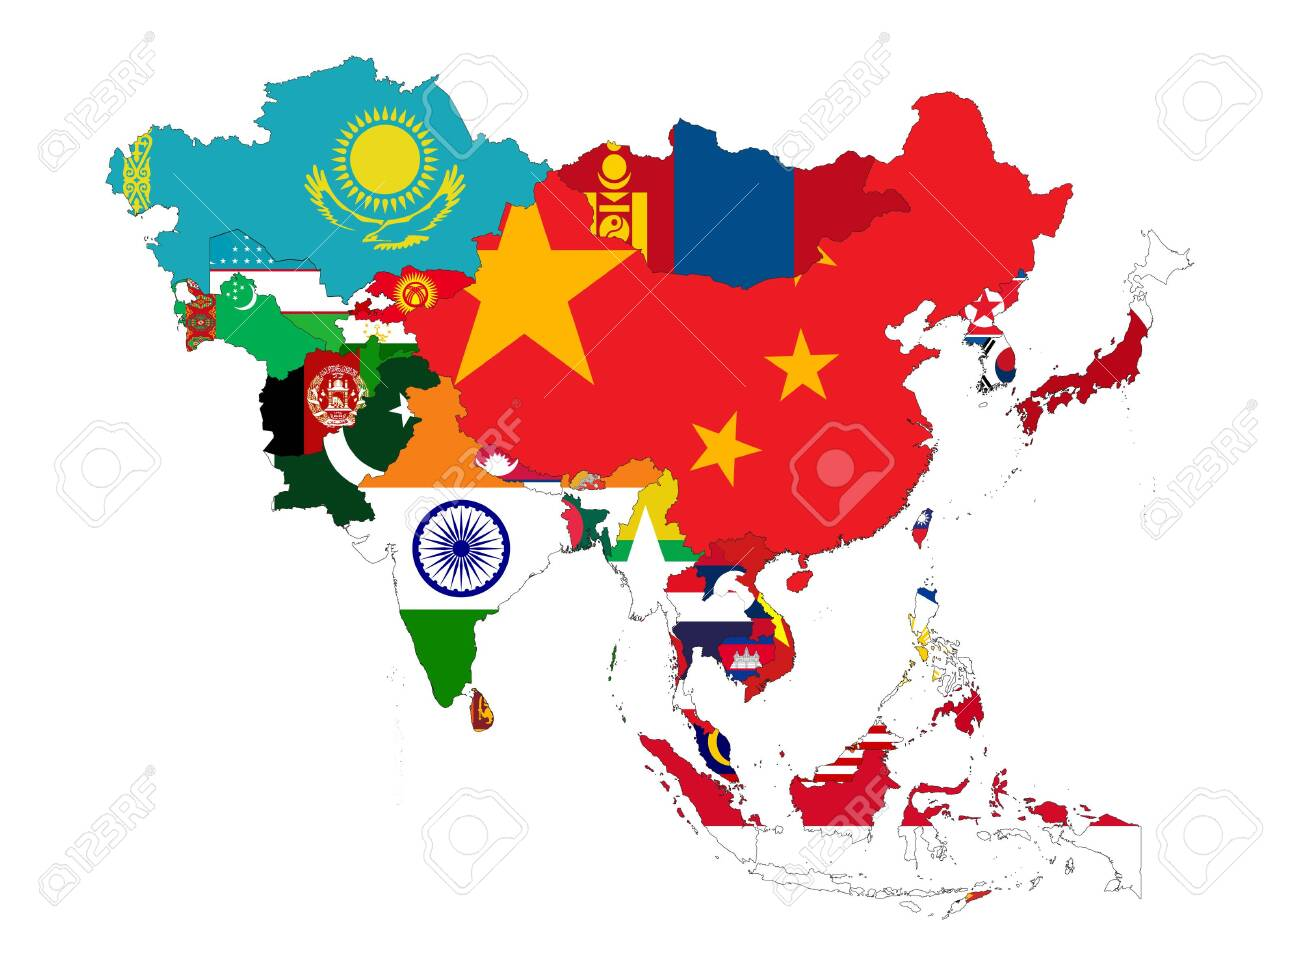 vector illustration of Map of Asia countries with national flag - 151702715